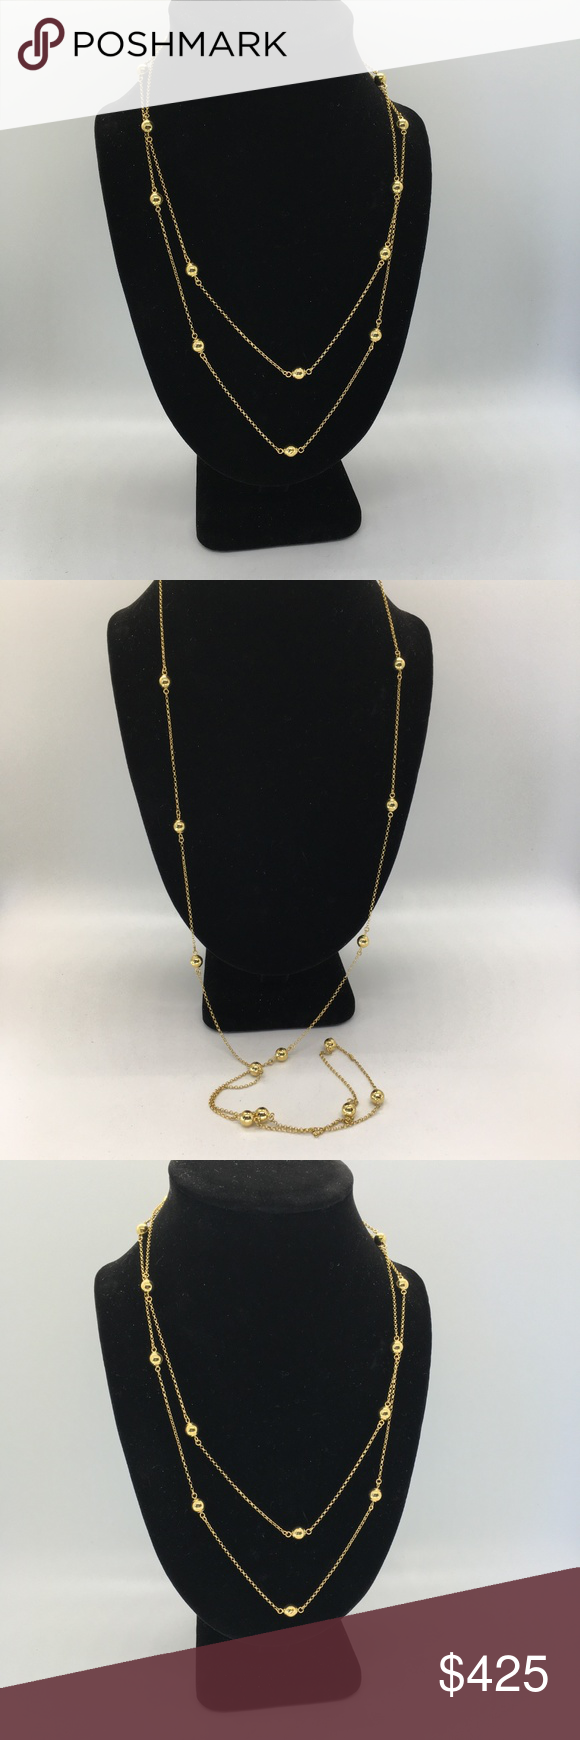 14k Italian Milor Chainlink And Beaded Gold Neckla Womens Jewelry Necklace Chain Link Stone Necklace